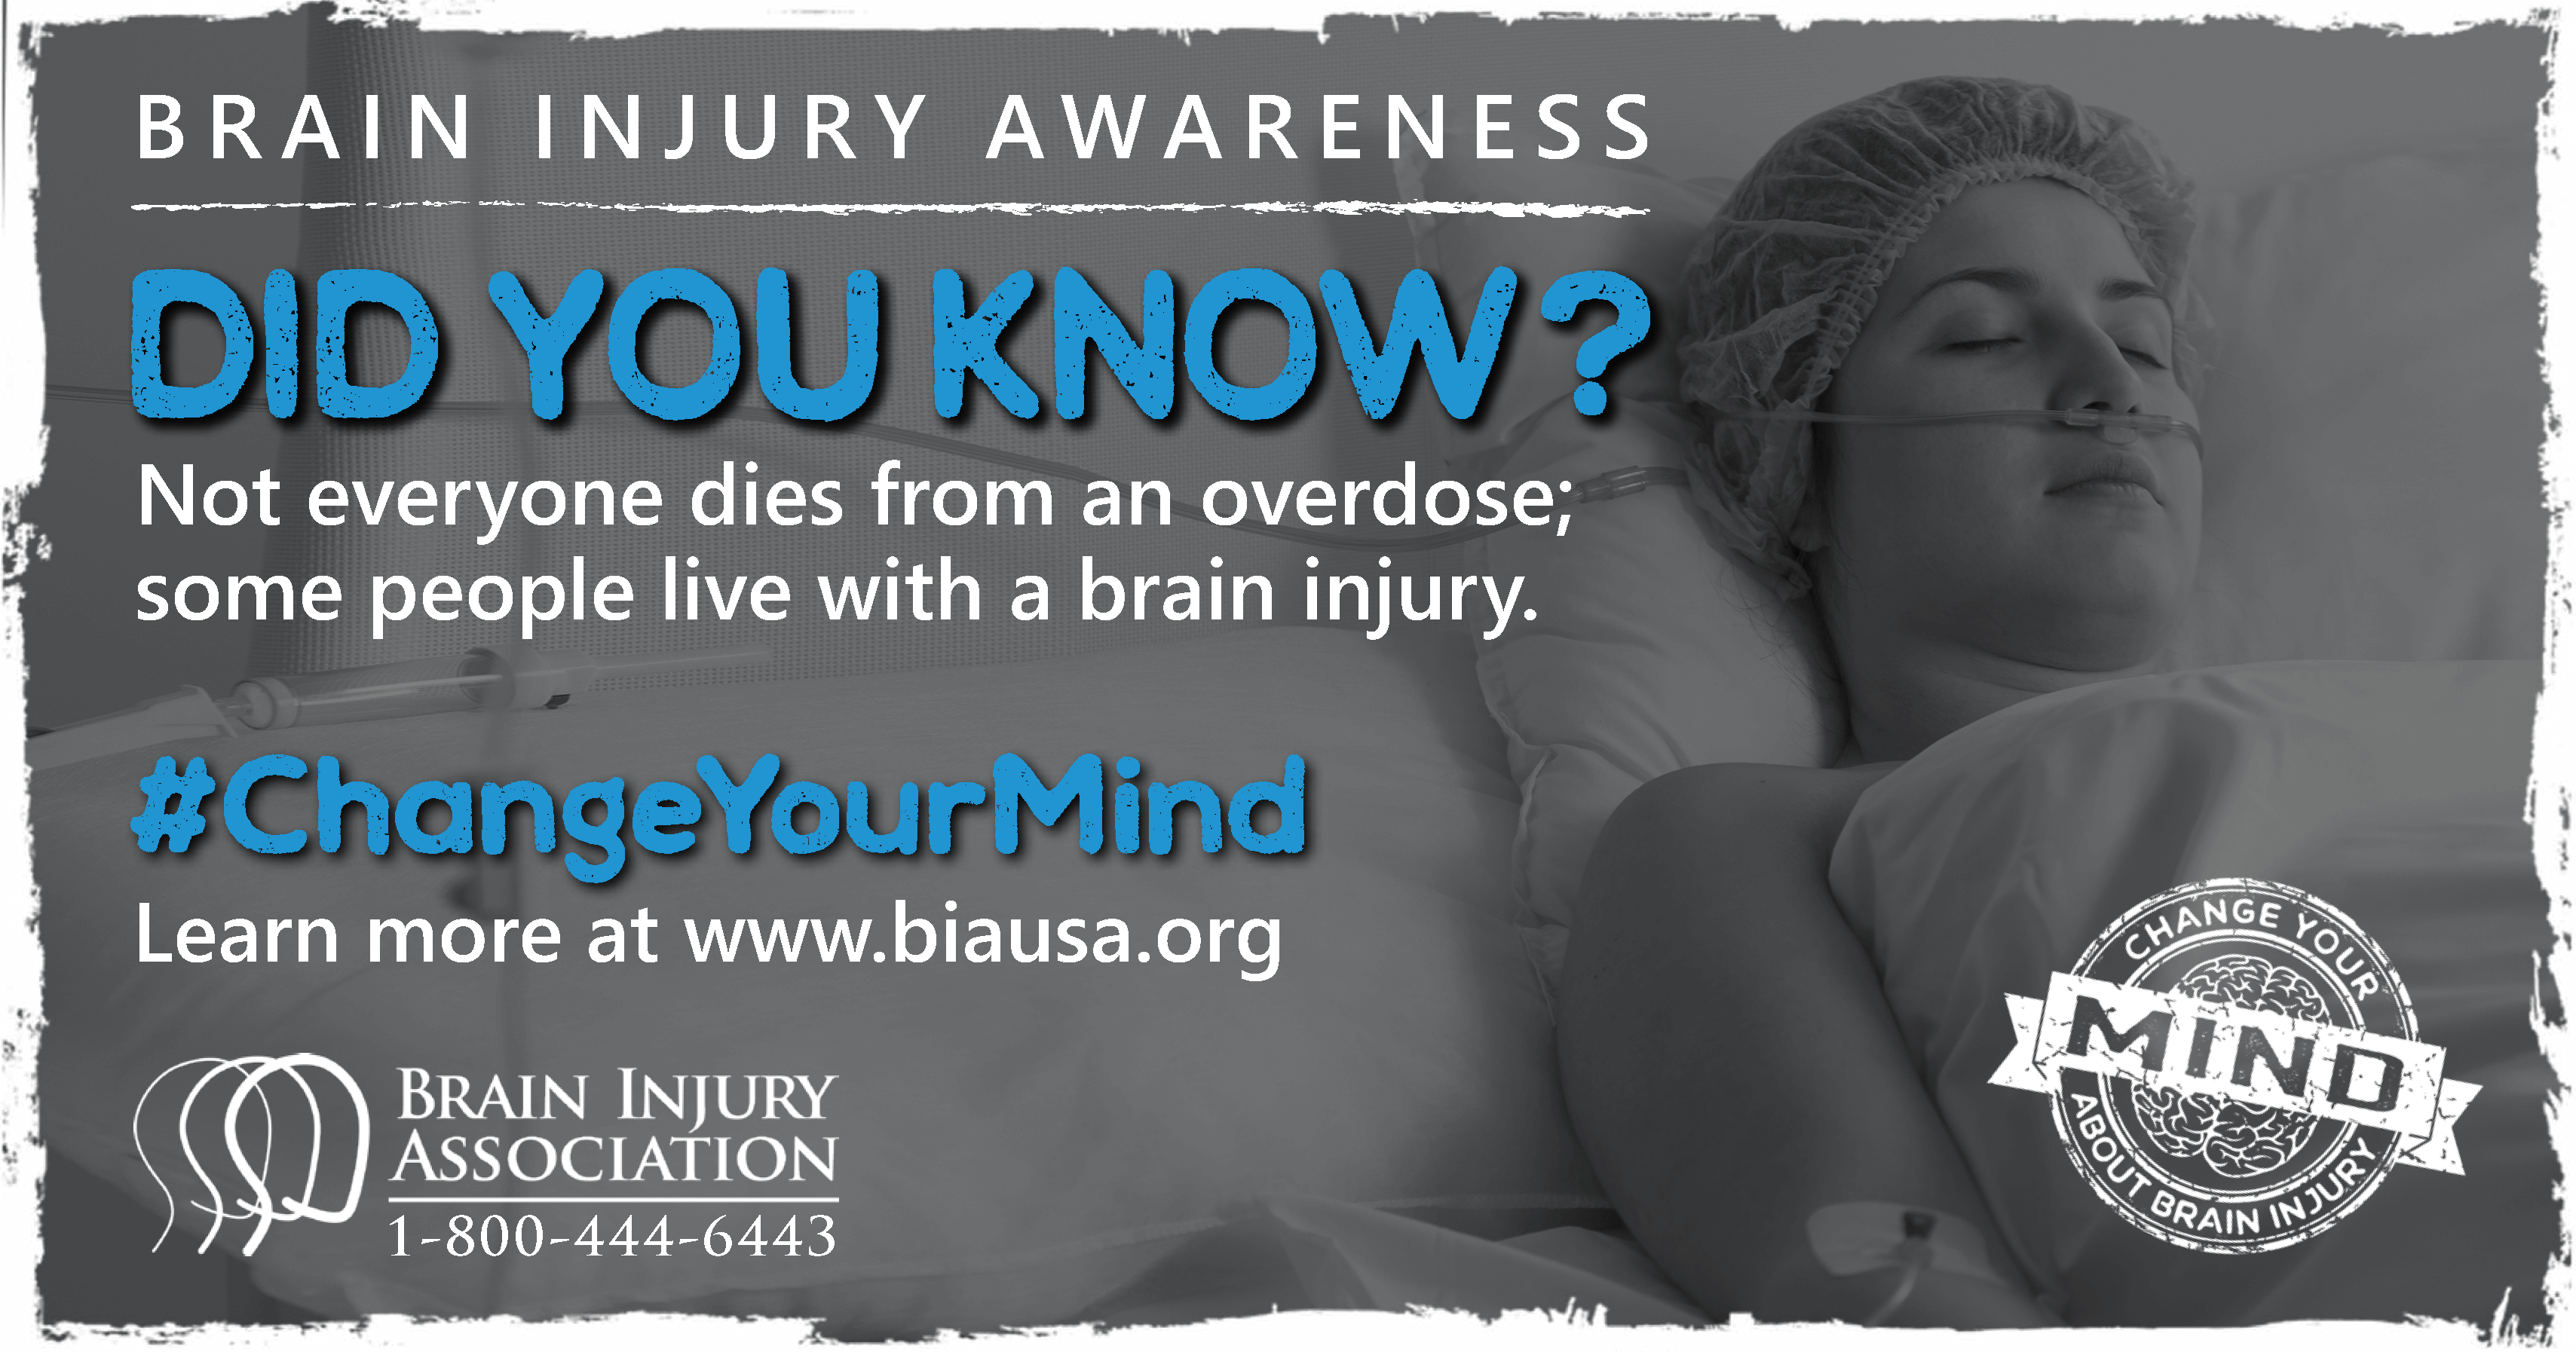 Not everyone dies from an overdose; some people live with a brain injury.